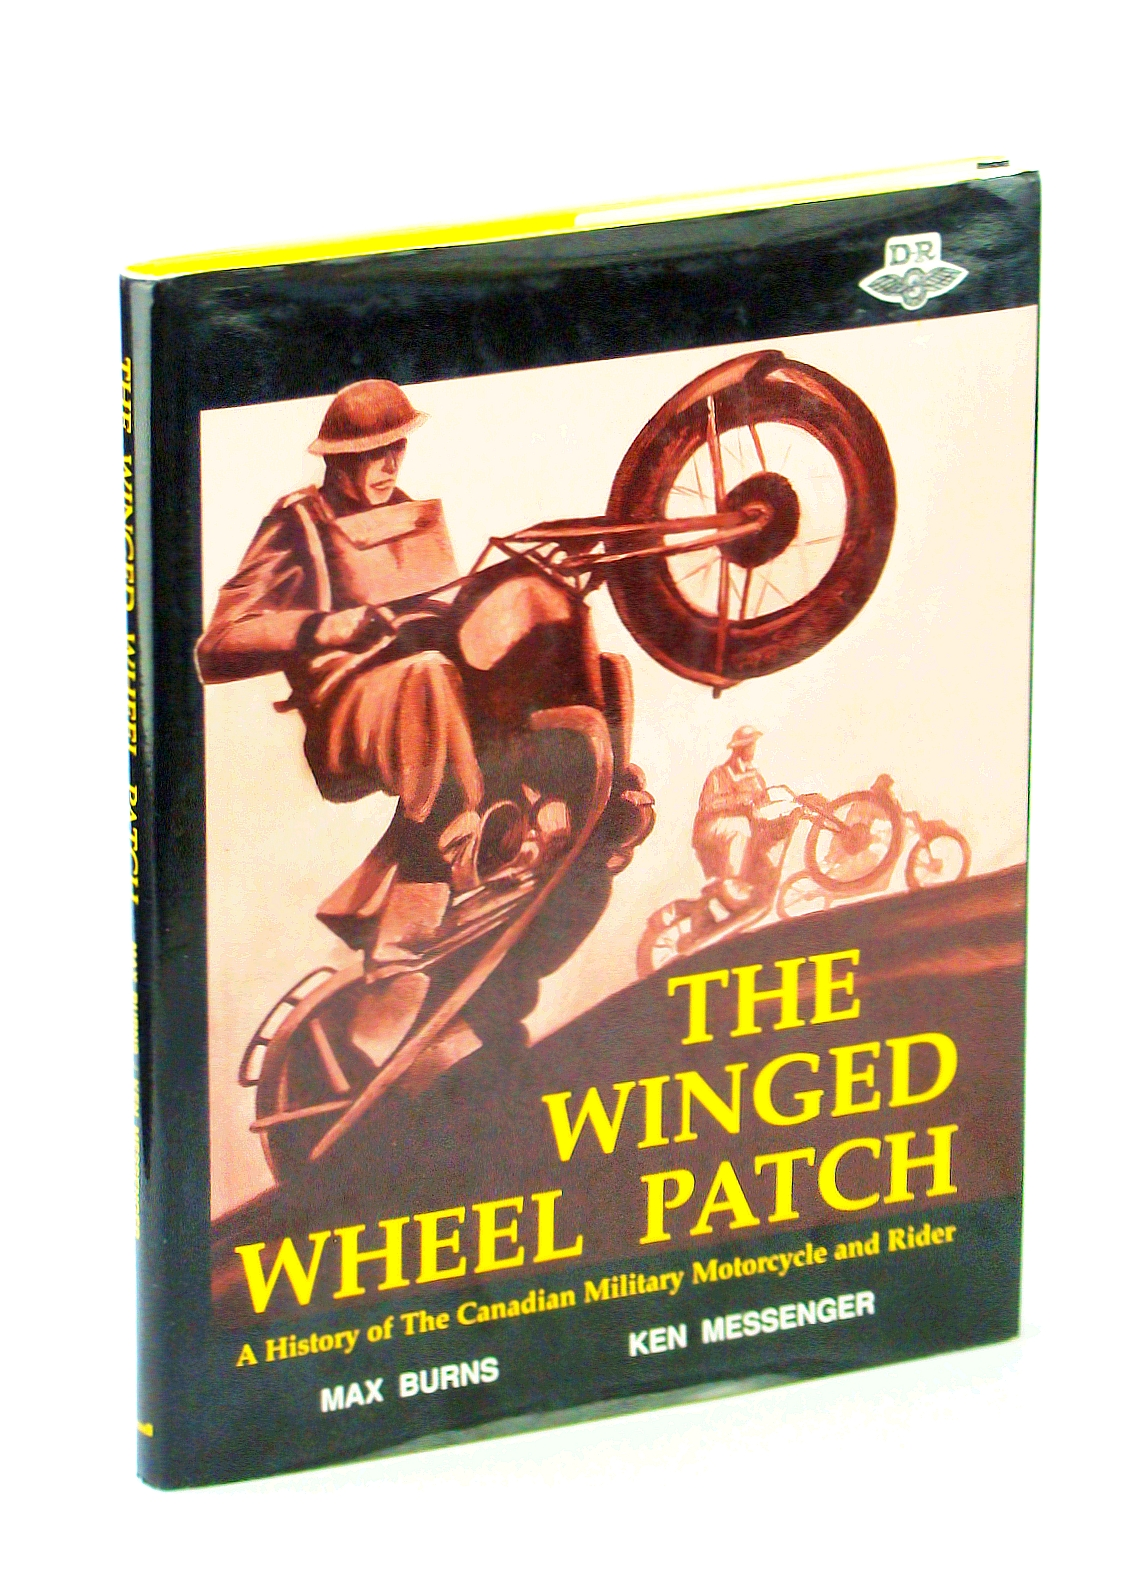 Image for The Winged Wheel Patch: A History of the Canadian Military Motorcycle and Rider